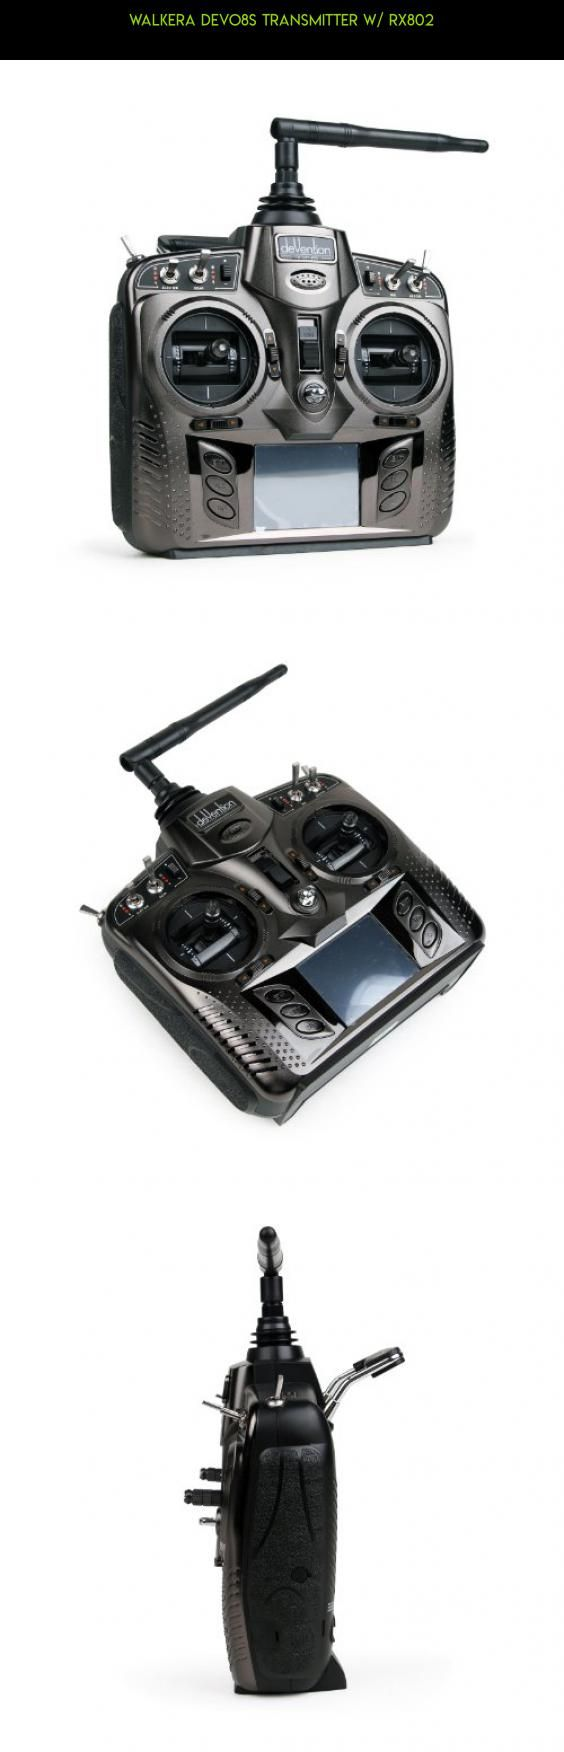 Walkera Devo8S Transmitter w/ RX802 #technology #walkera #plans #rtf #gadgets #products #shopping #fpv #helicopter #tech #drone #parts #racing #kit #camera